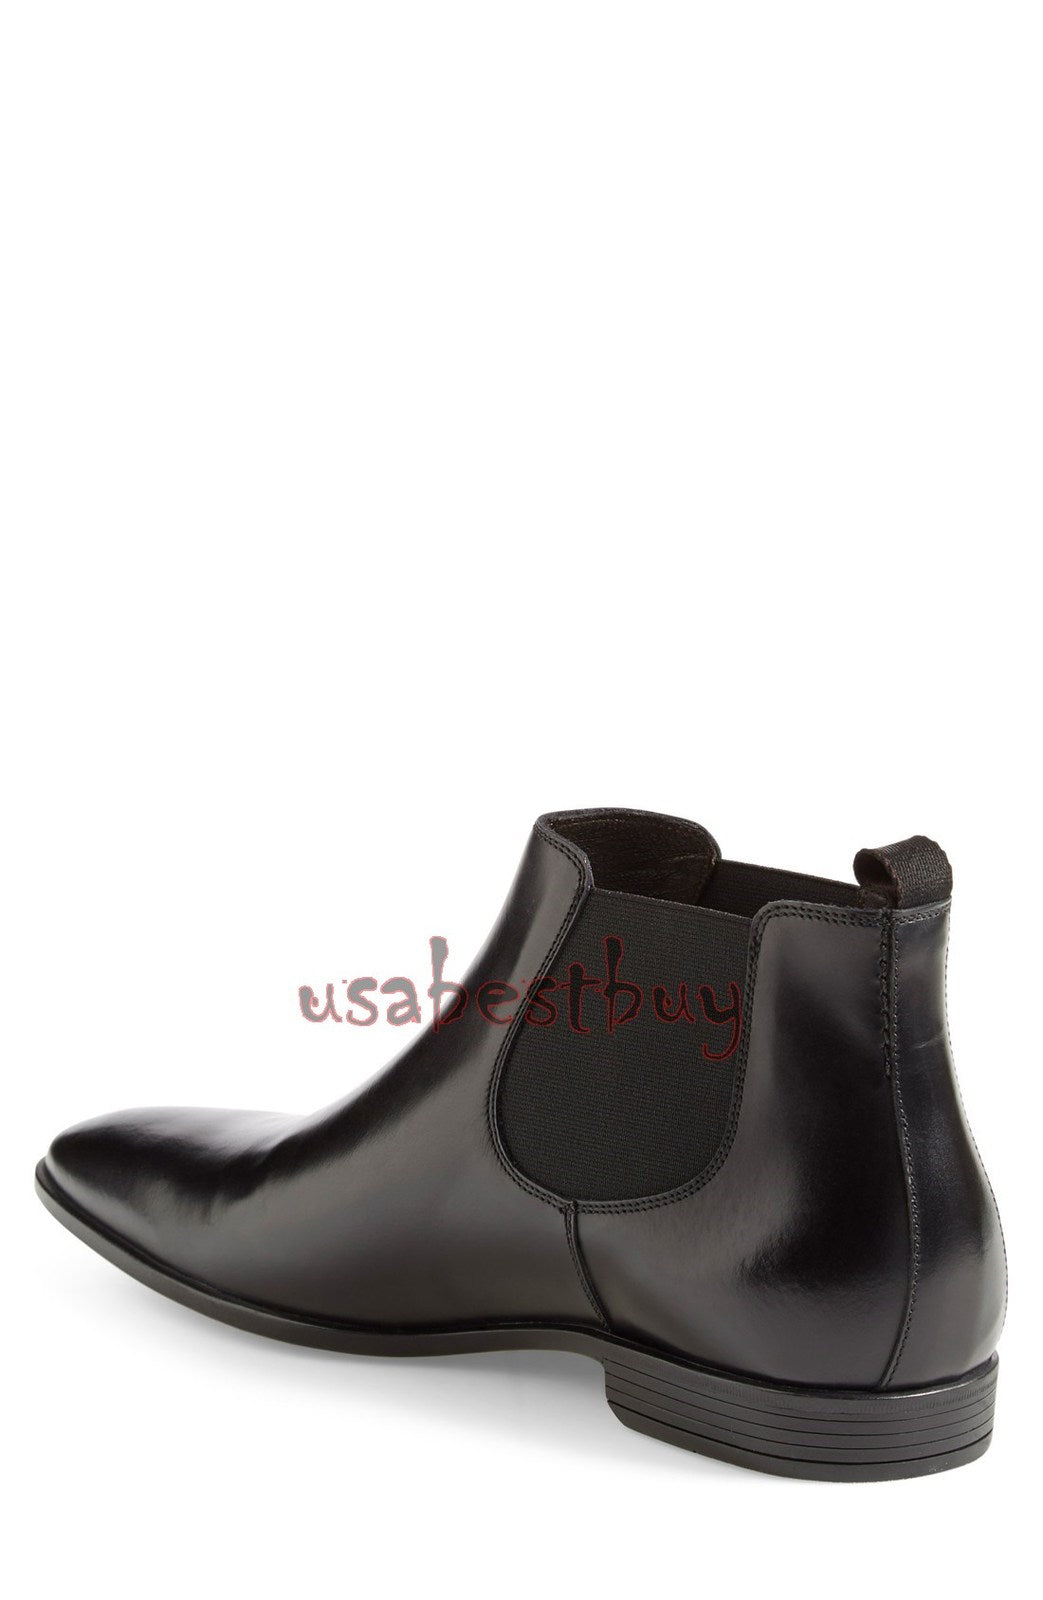 New Handmade Superb Style Black Leather Chelsea Boots, Men Stylish leather boots